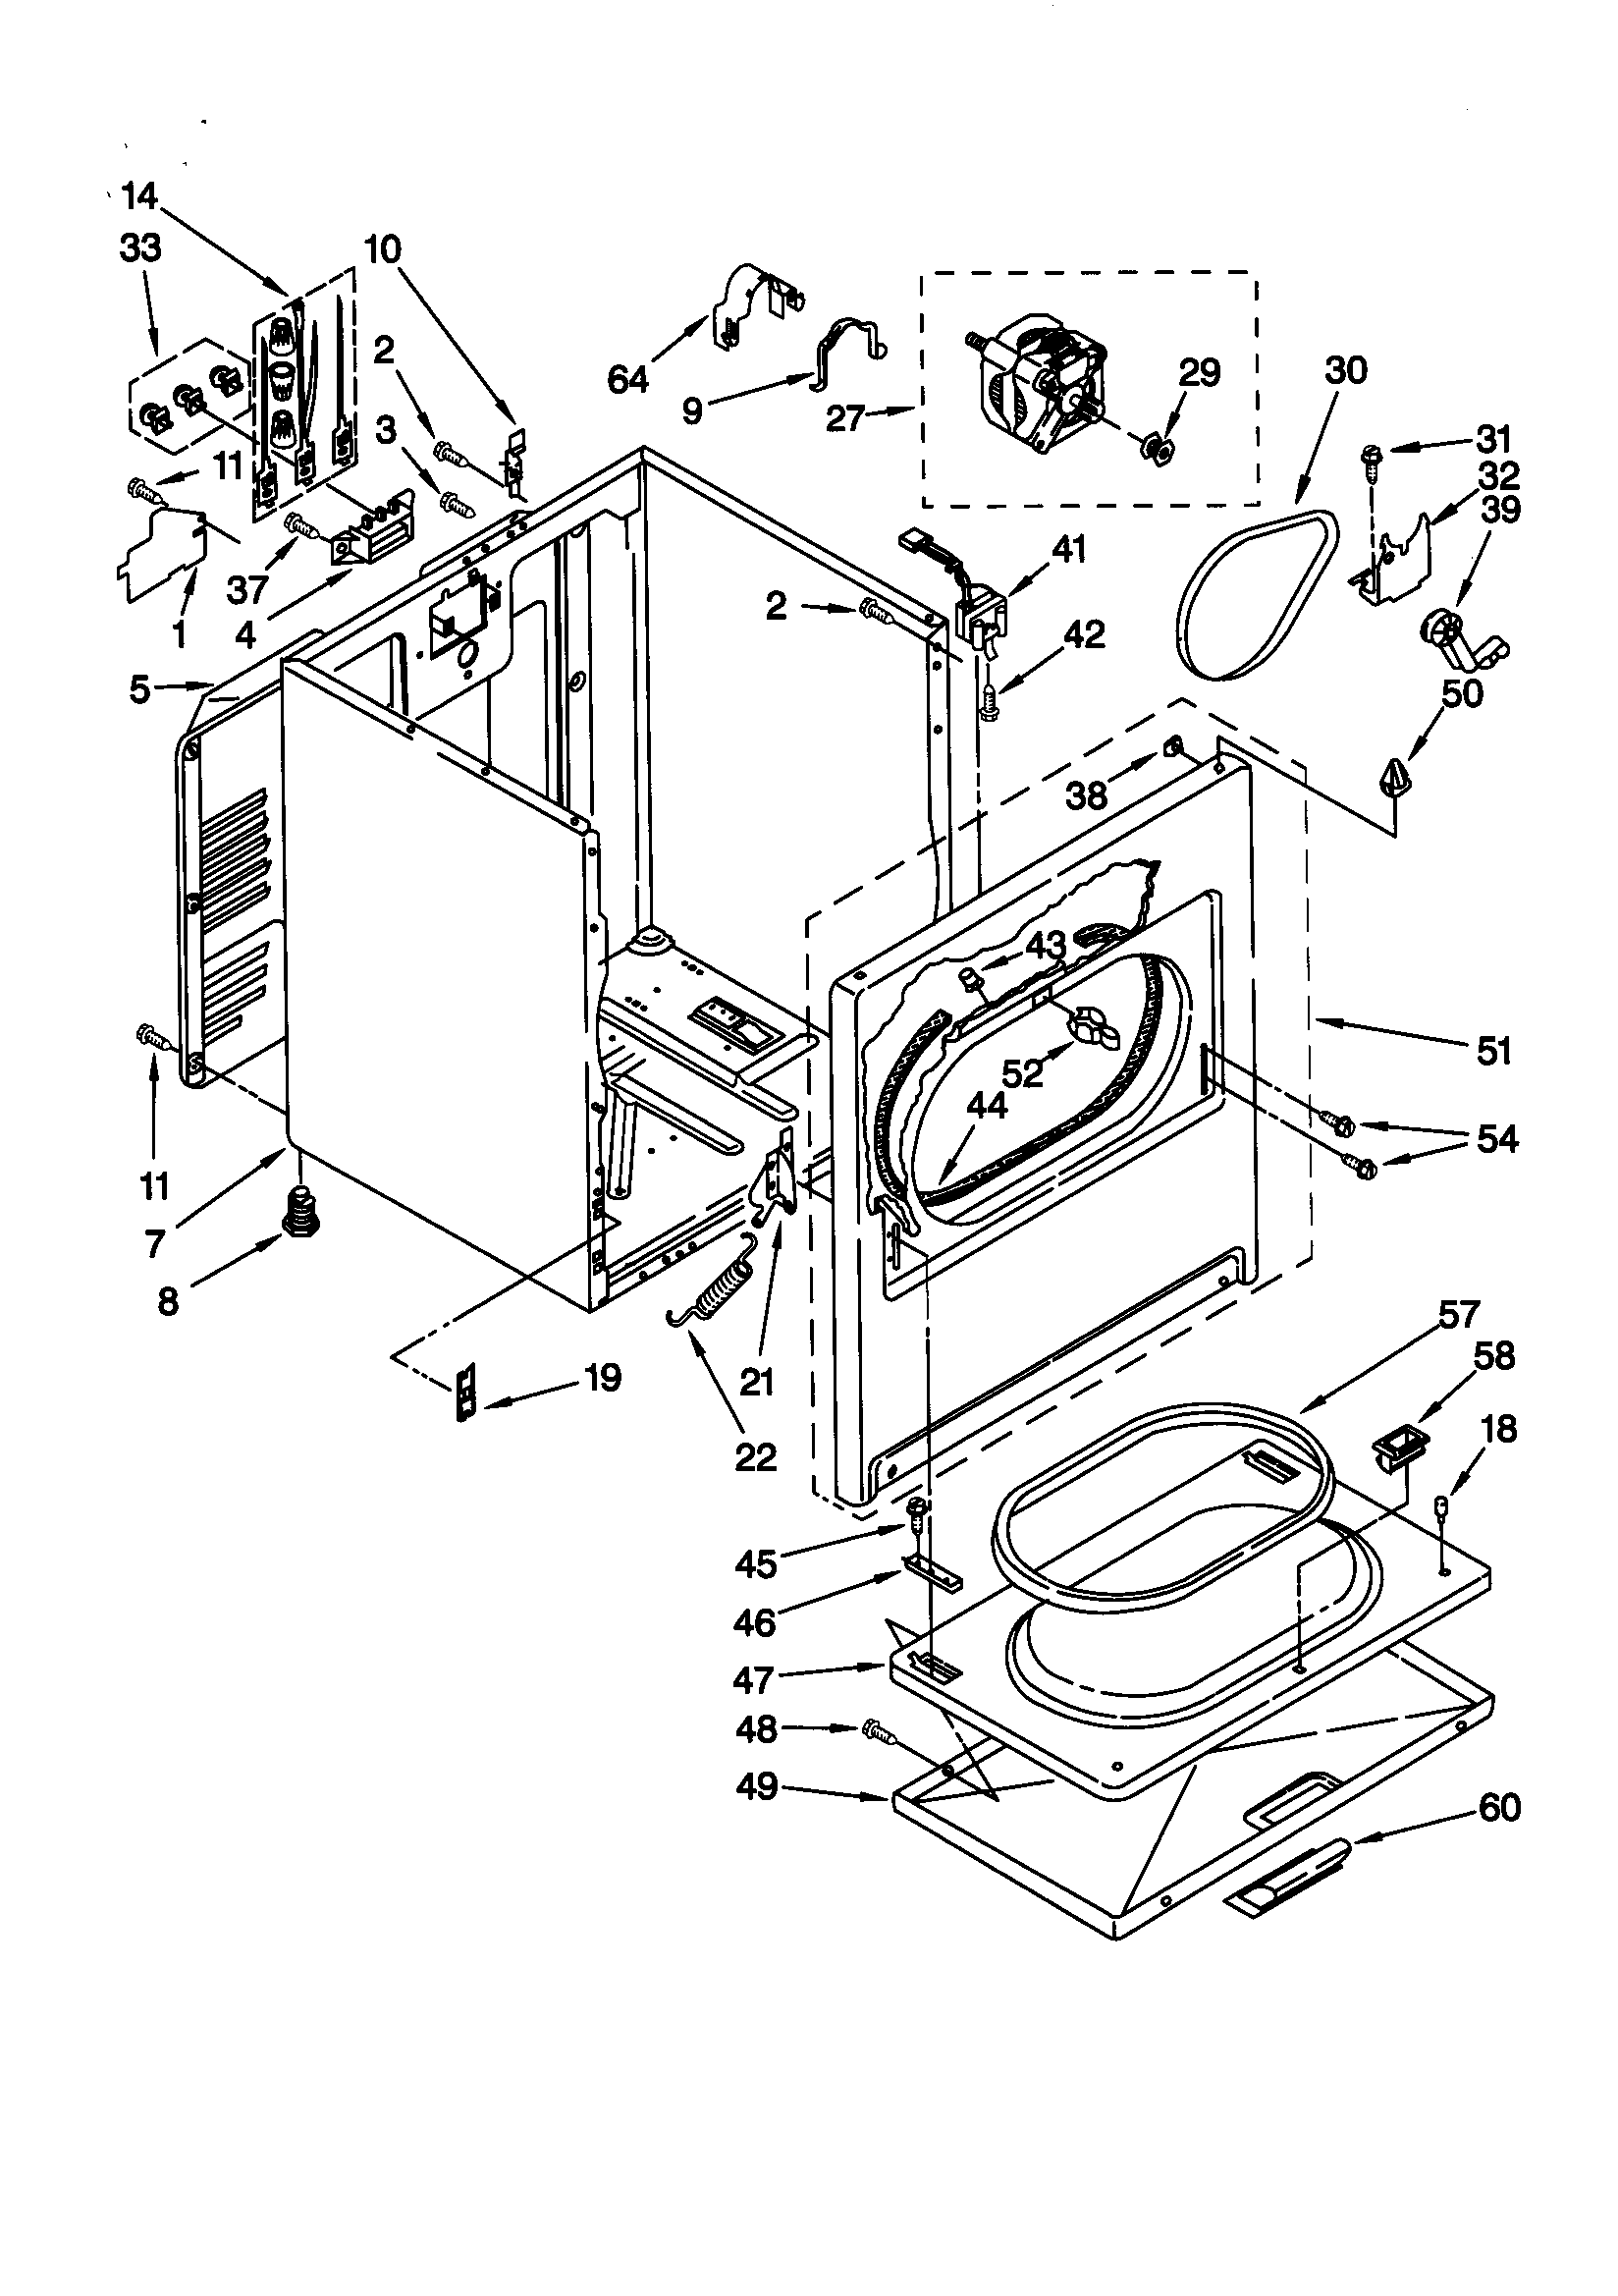 Kenmore He3 Dryer Heating Element Wiring Diagram Whirlpool